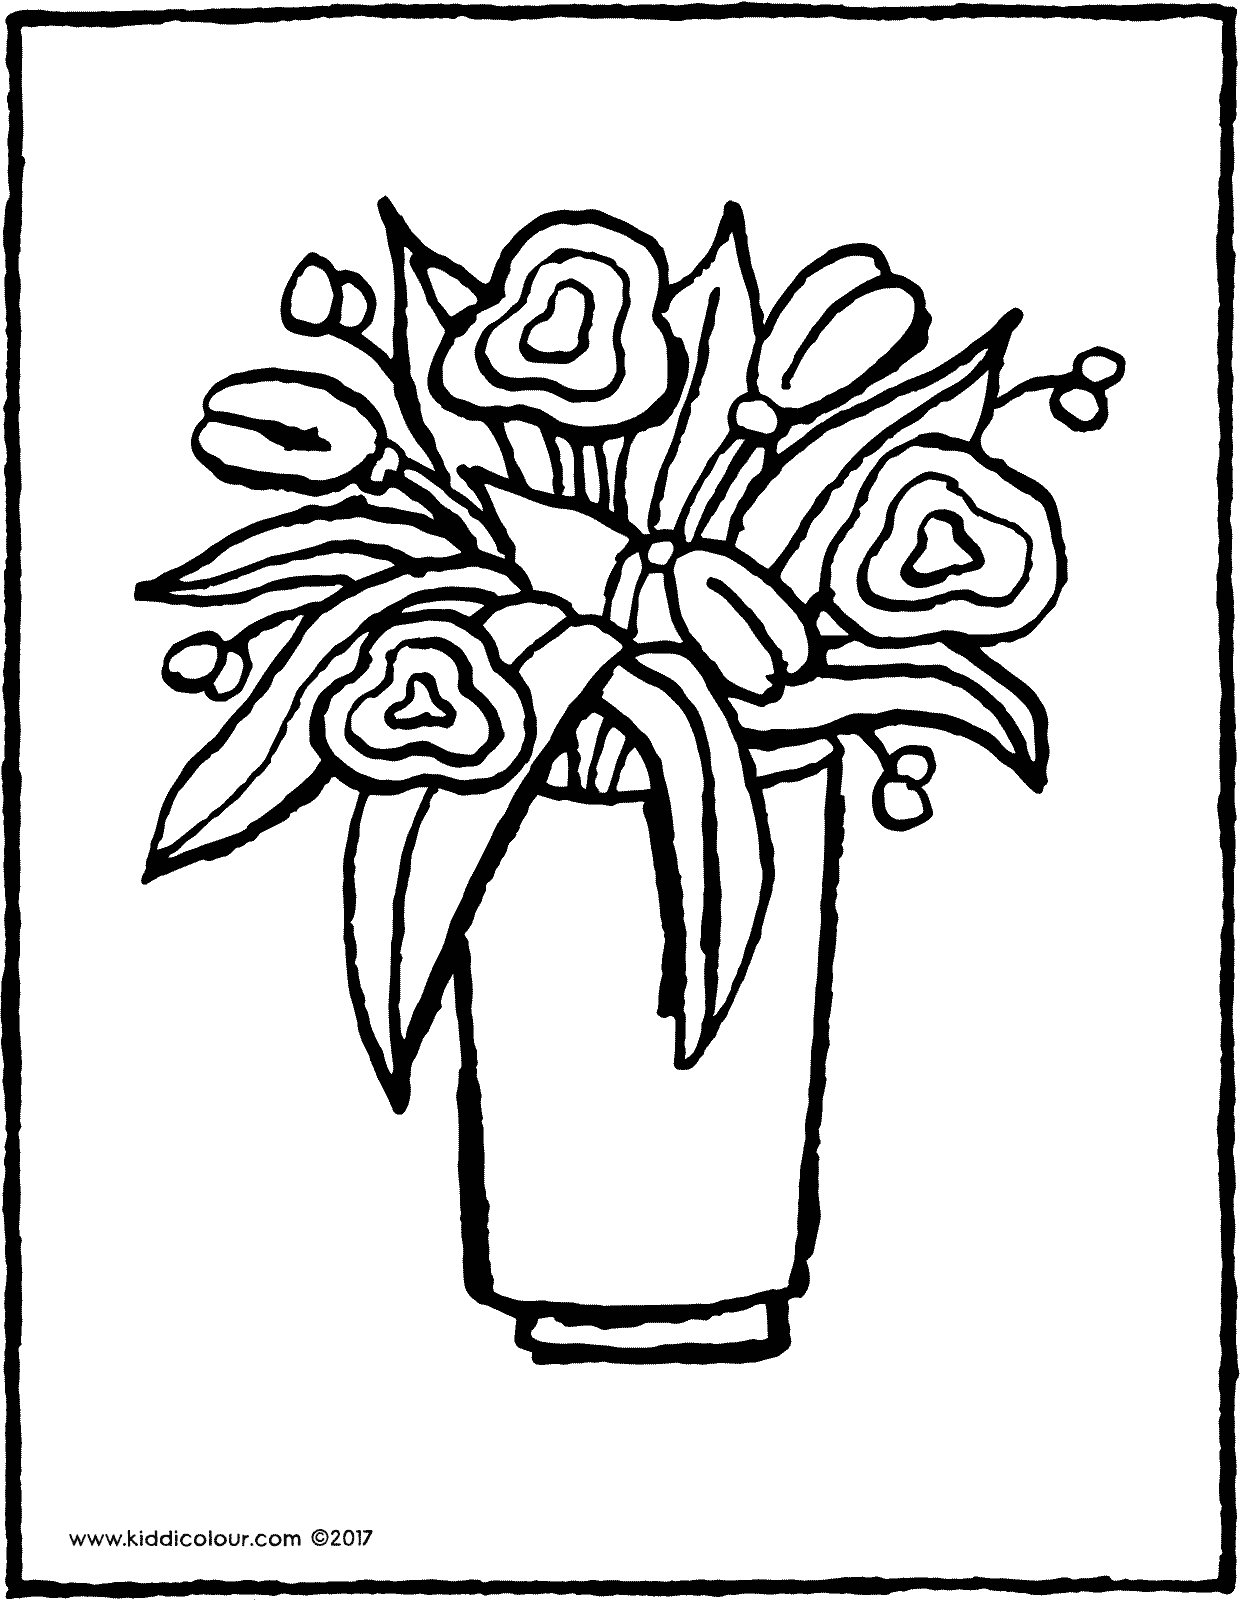 flowers in a vase colouring page drawing picture 01V